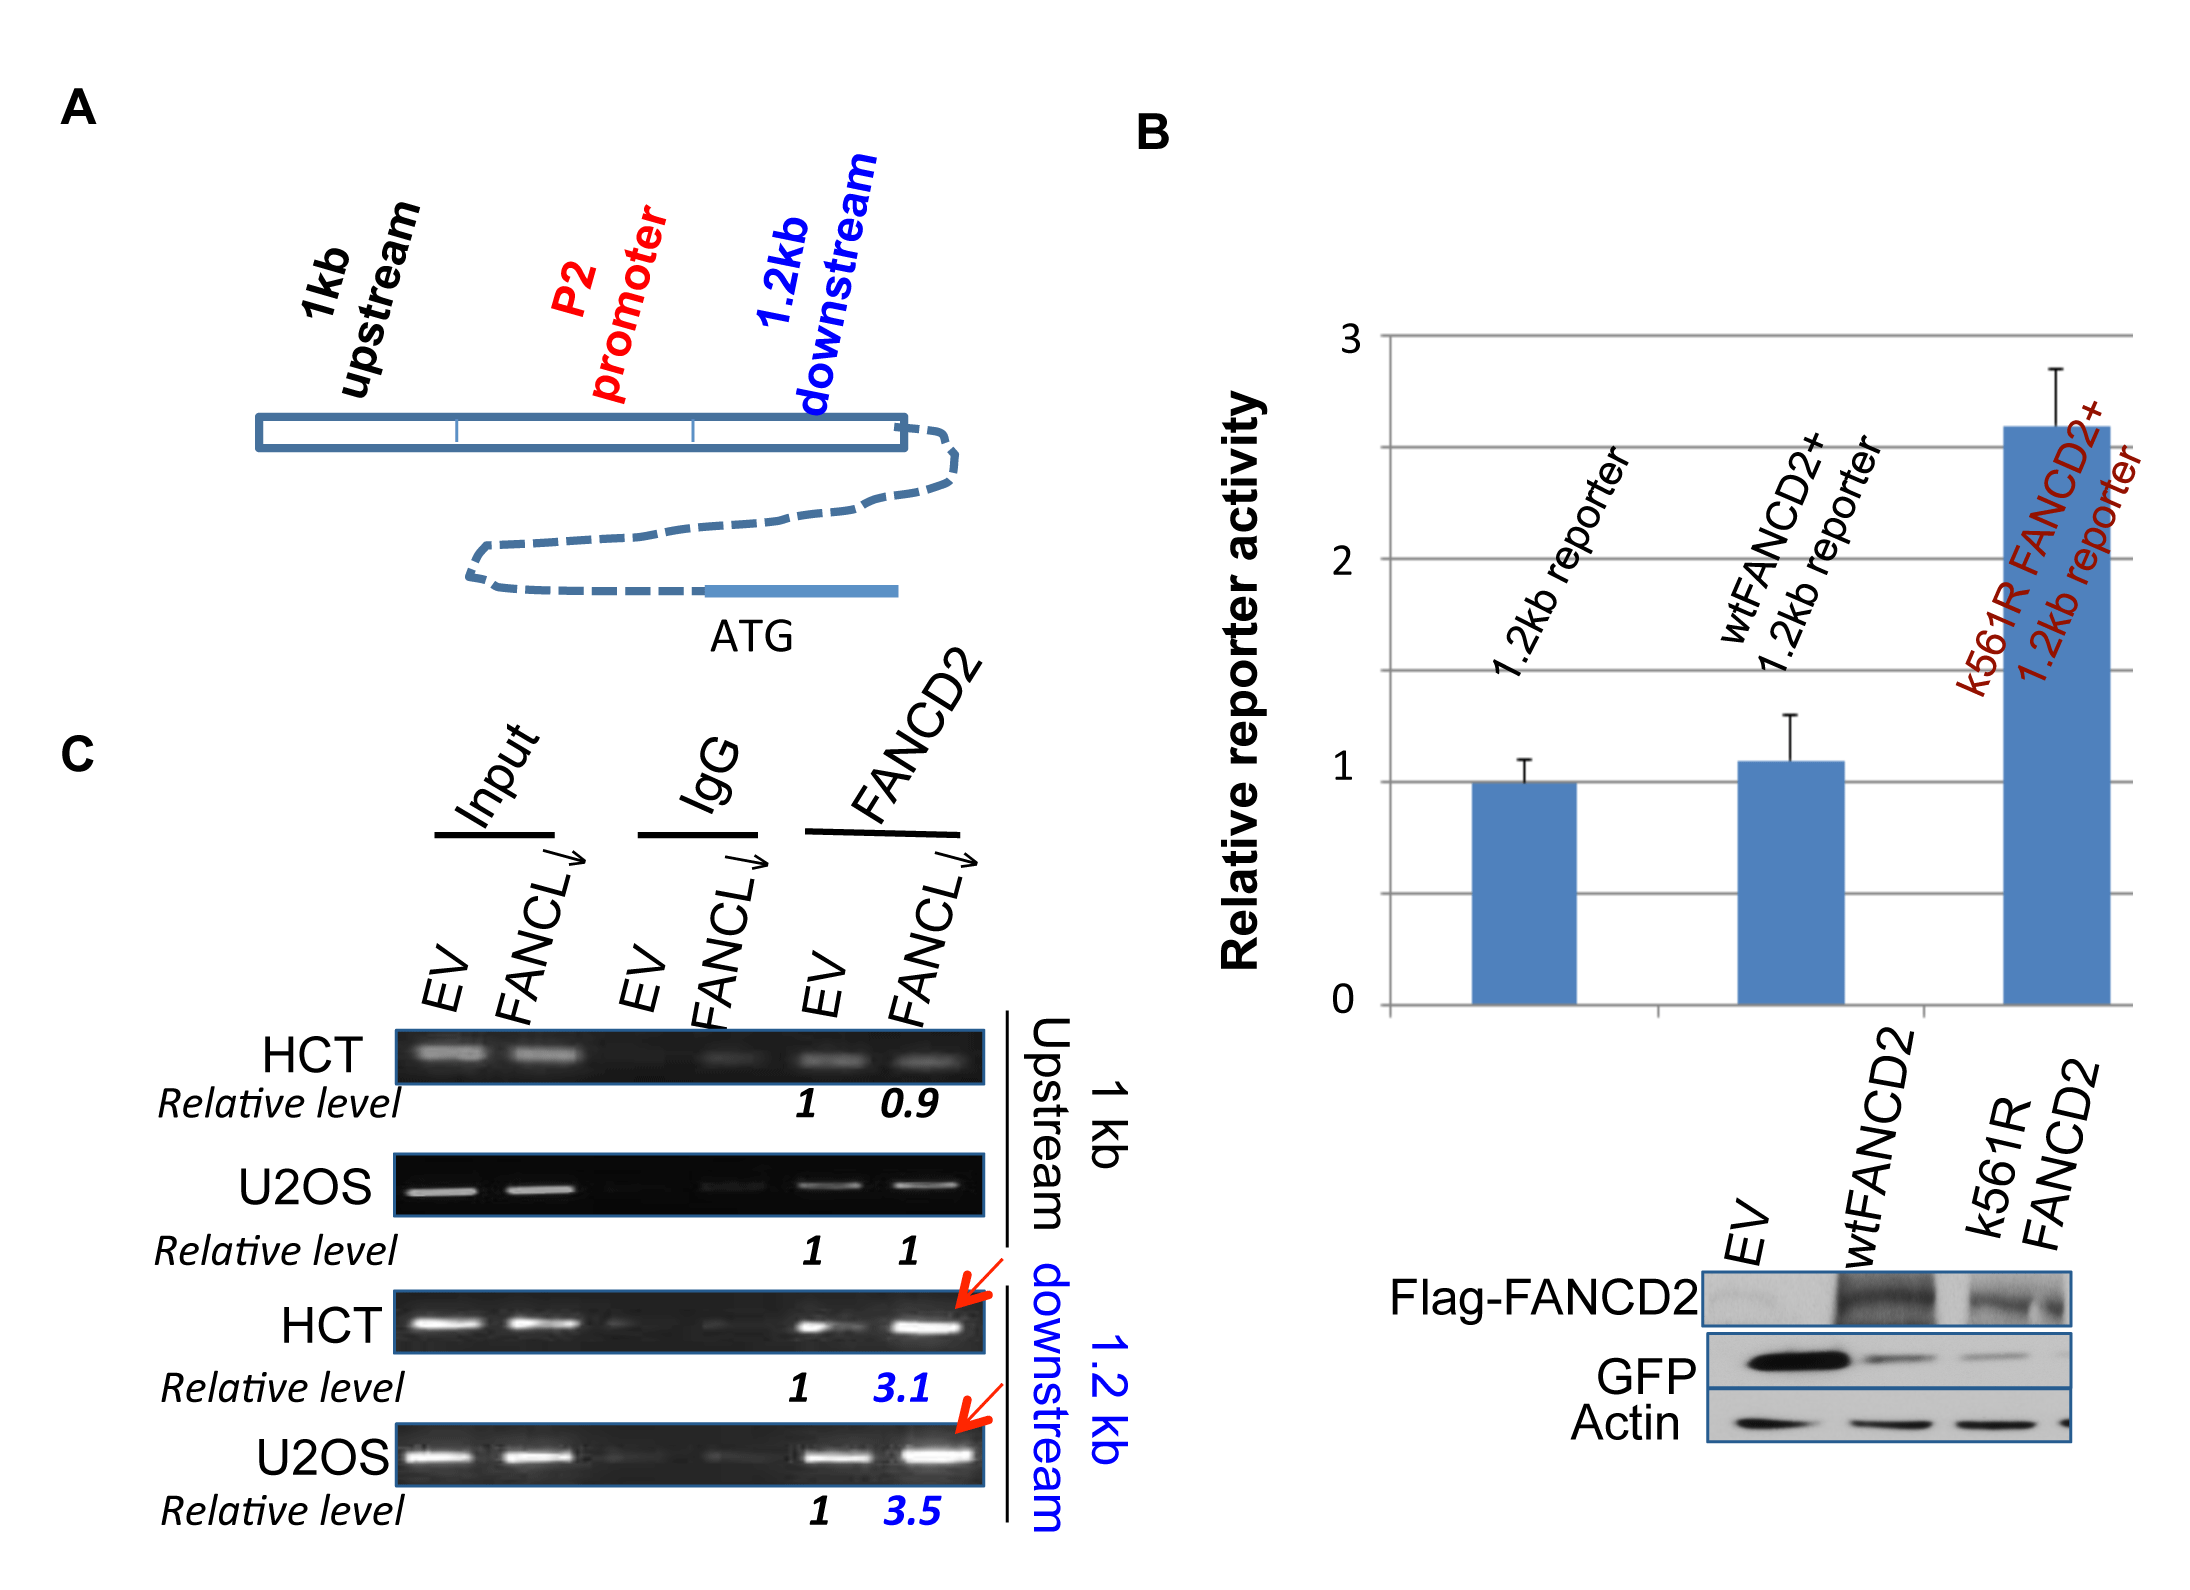 Inactivated FANCD2 promotes the expression of ∆Np63 via a 1.2 kb DNA fragment downstream of the P2 promoter.